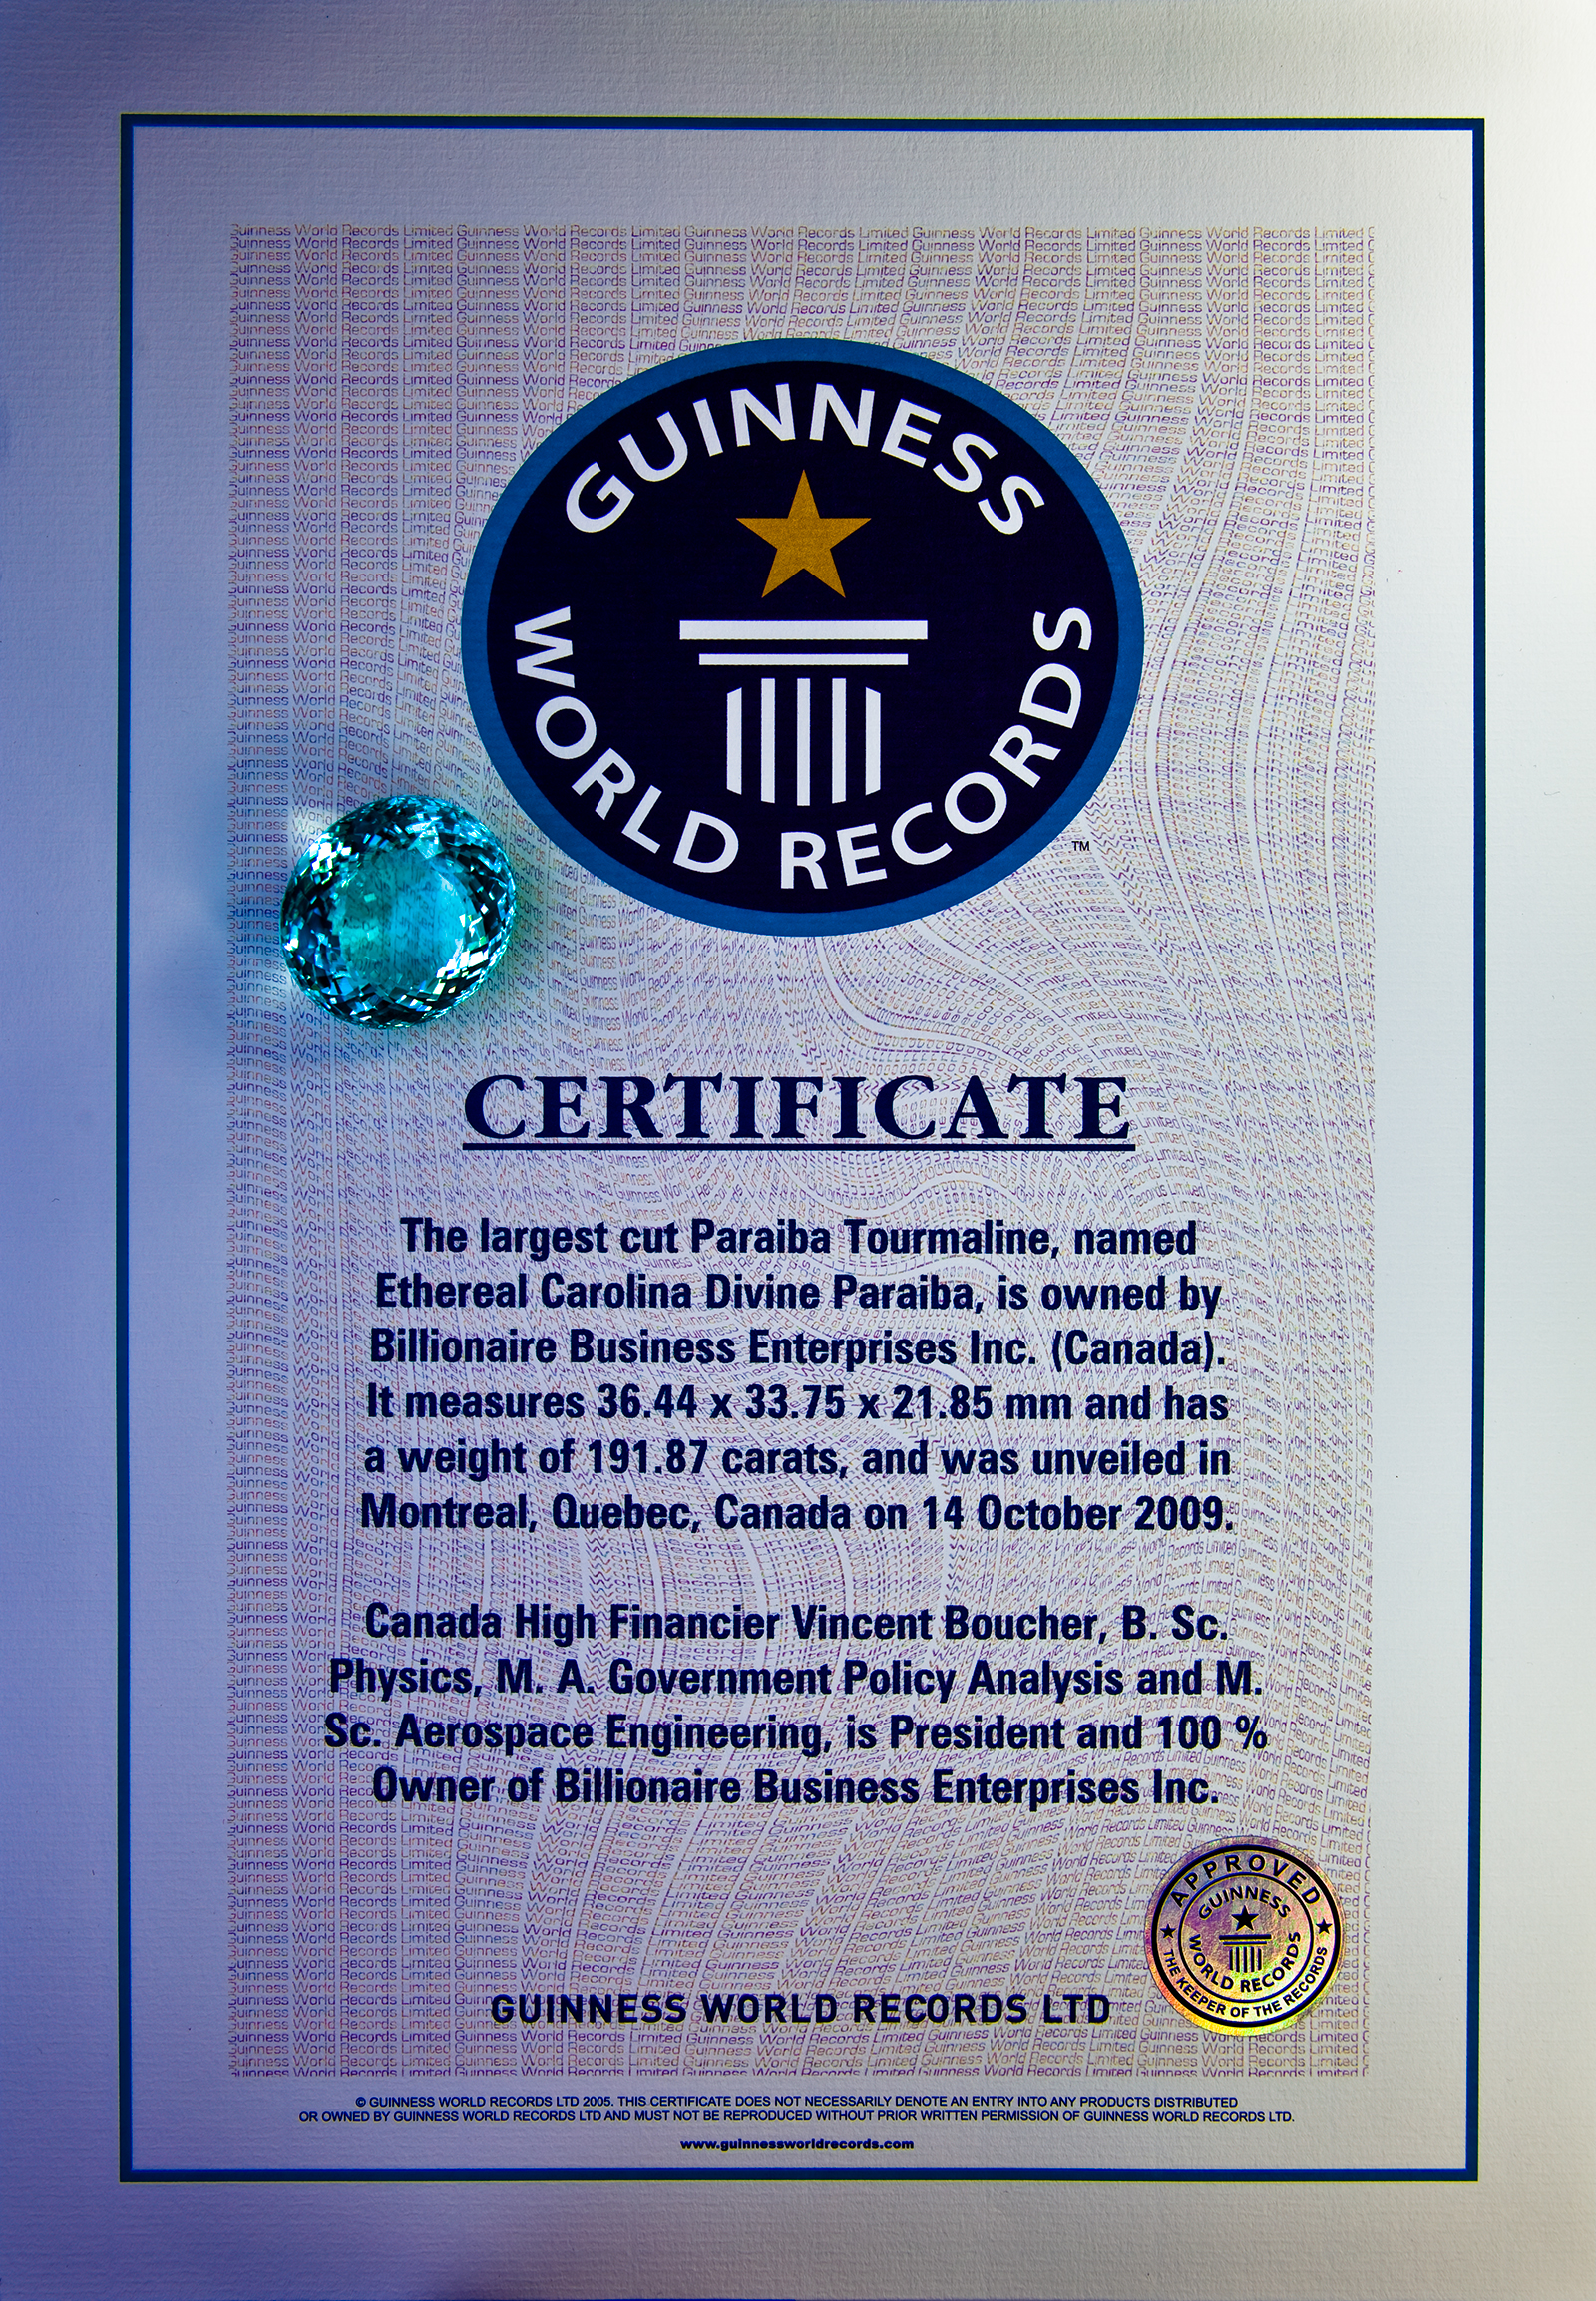 Québec.AI's Chairman Vincent Boucher holds a Guinness World Records in the fine arts and high jewelry industry: http://www.billionaire.tv/TheGazette.pdf